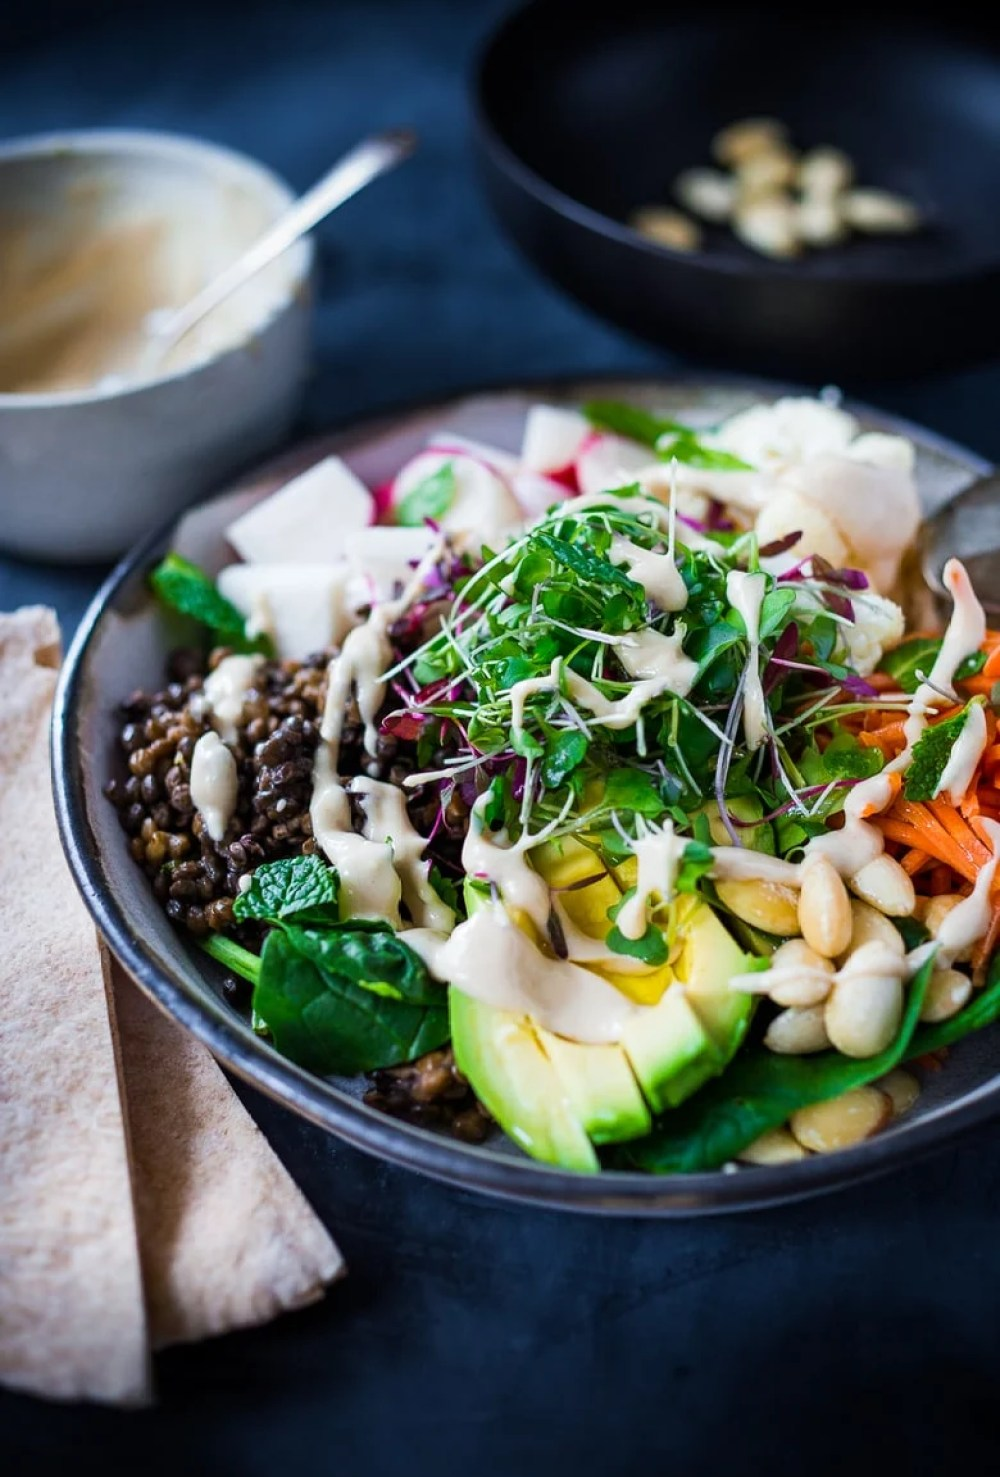 Minted Lentil Veggie Bowl w/ Soaked Almonds & Quick Hummus Dressing